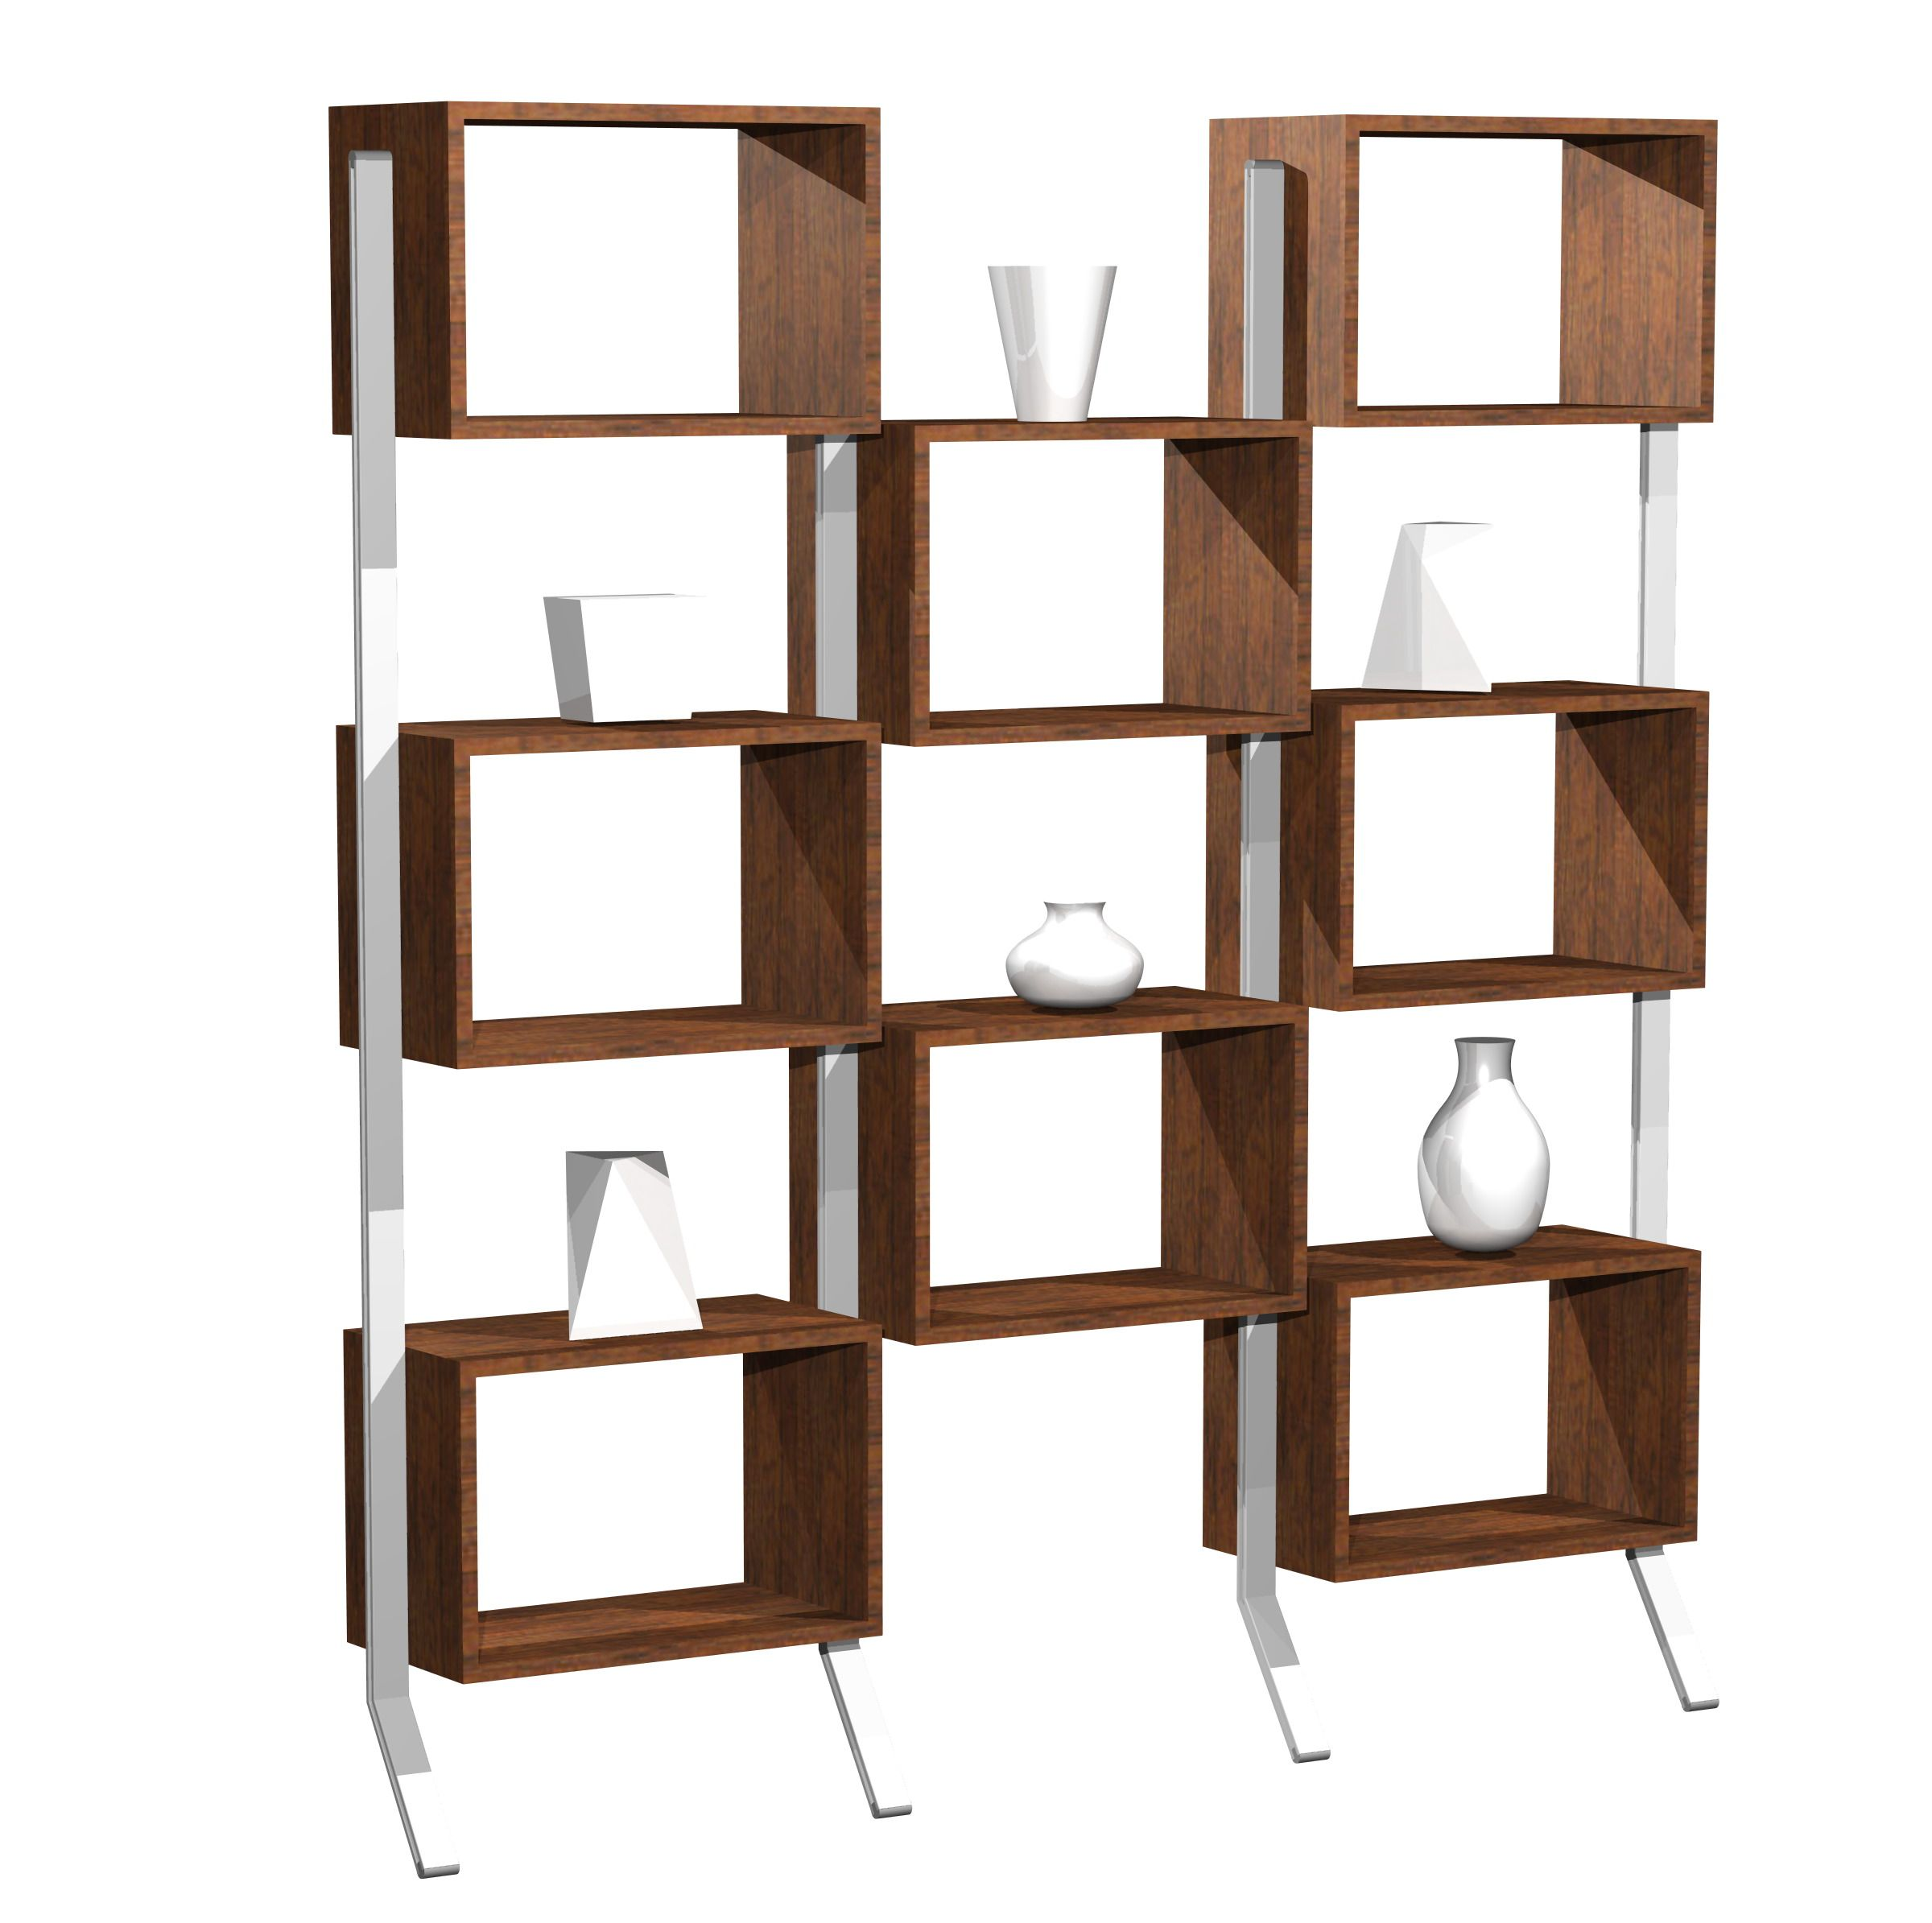 office wall shelving units. 21 Best Wall Mounted Desk Designs For Small Homes - ThefischerHouse Office Shelving Units